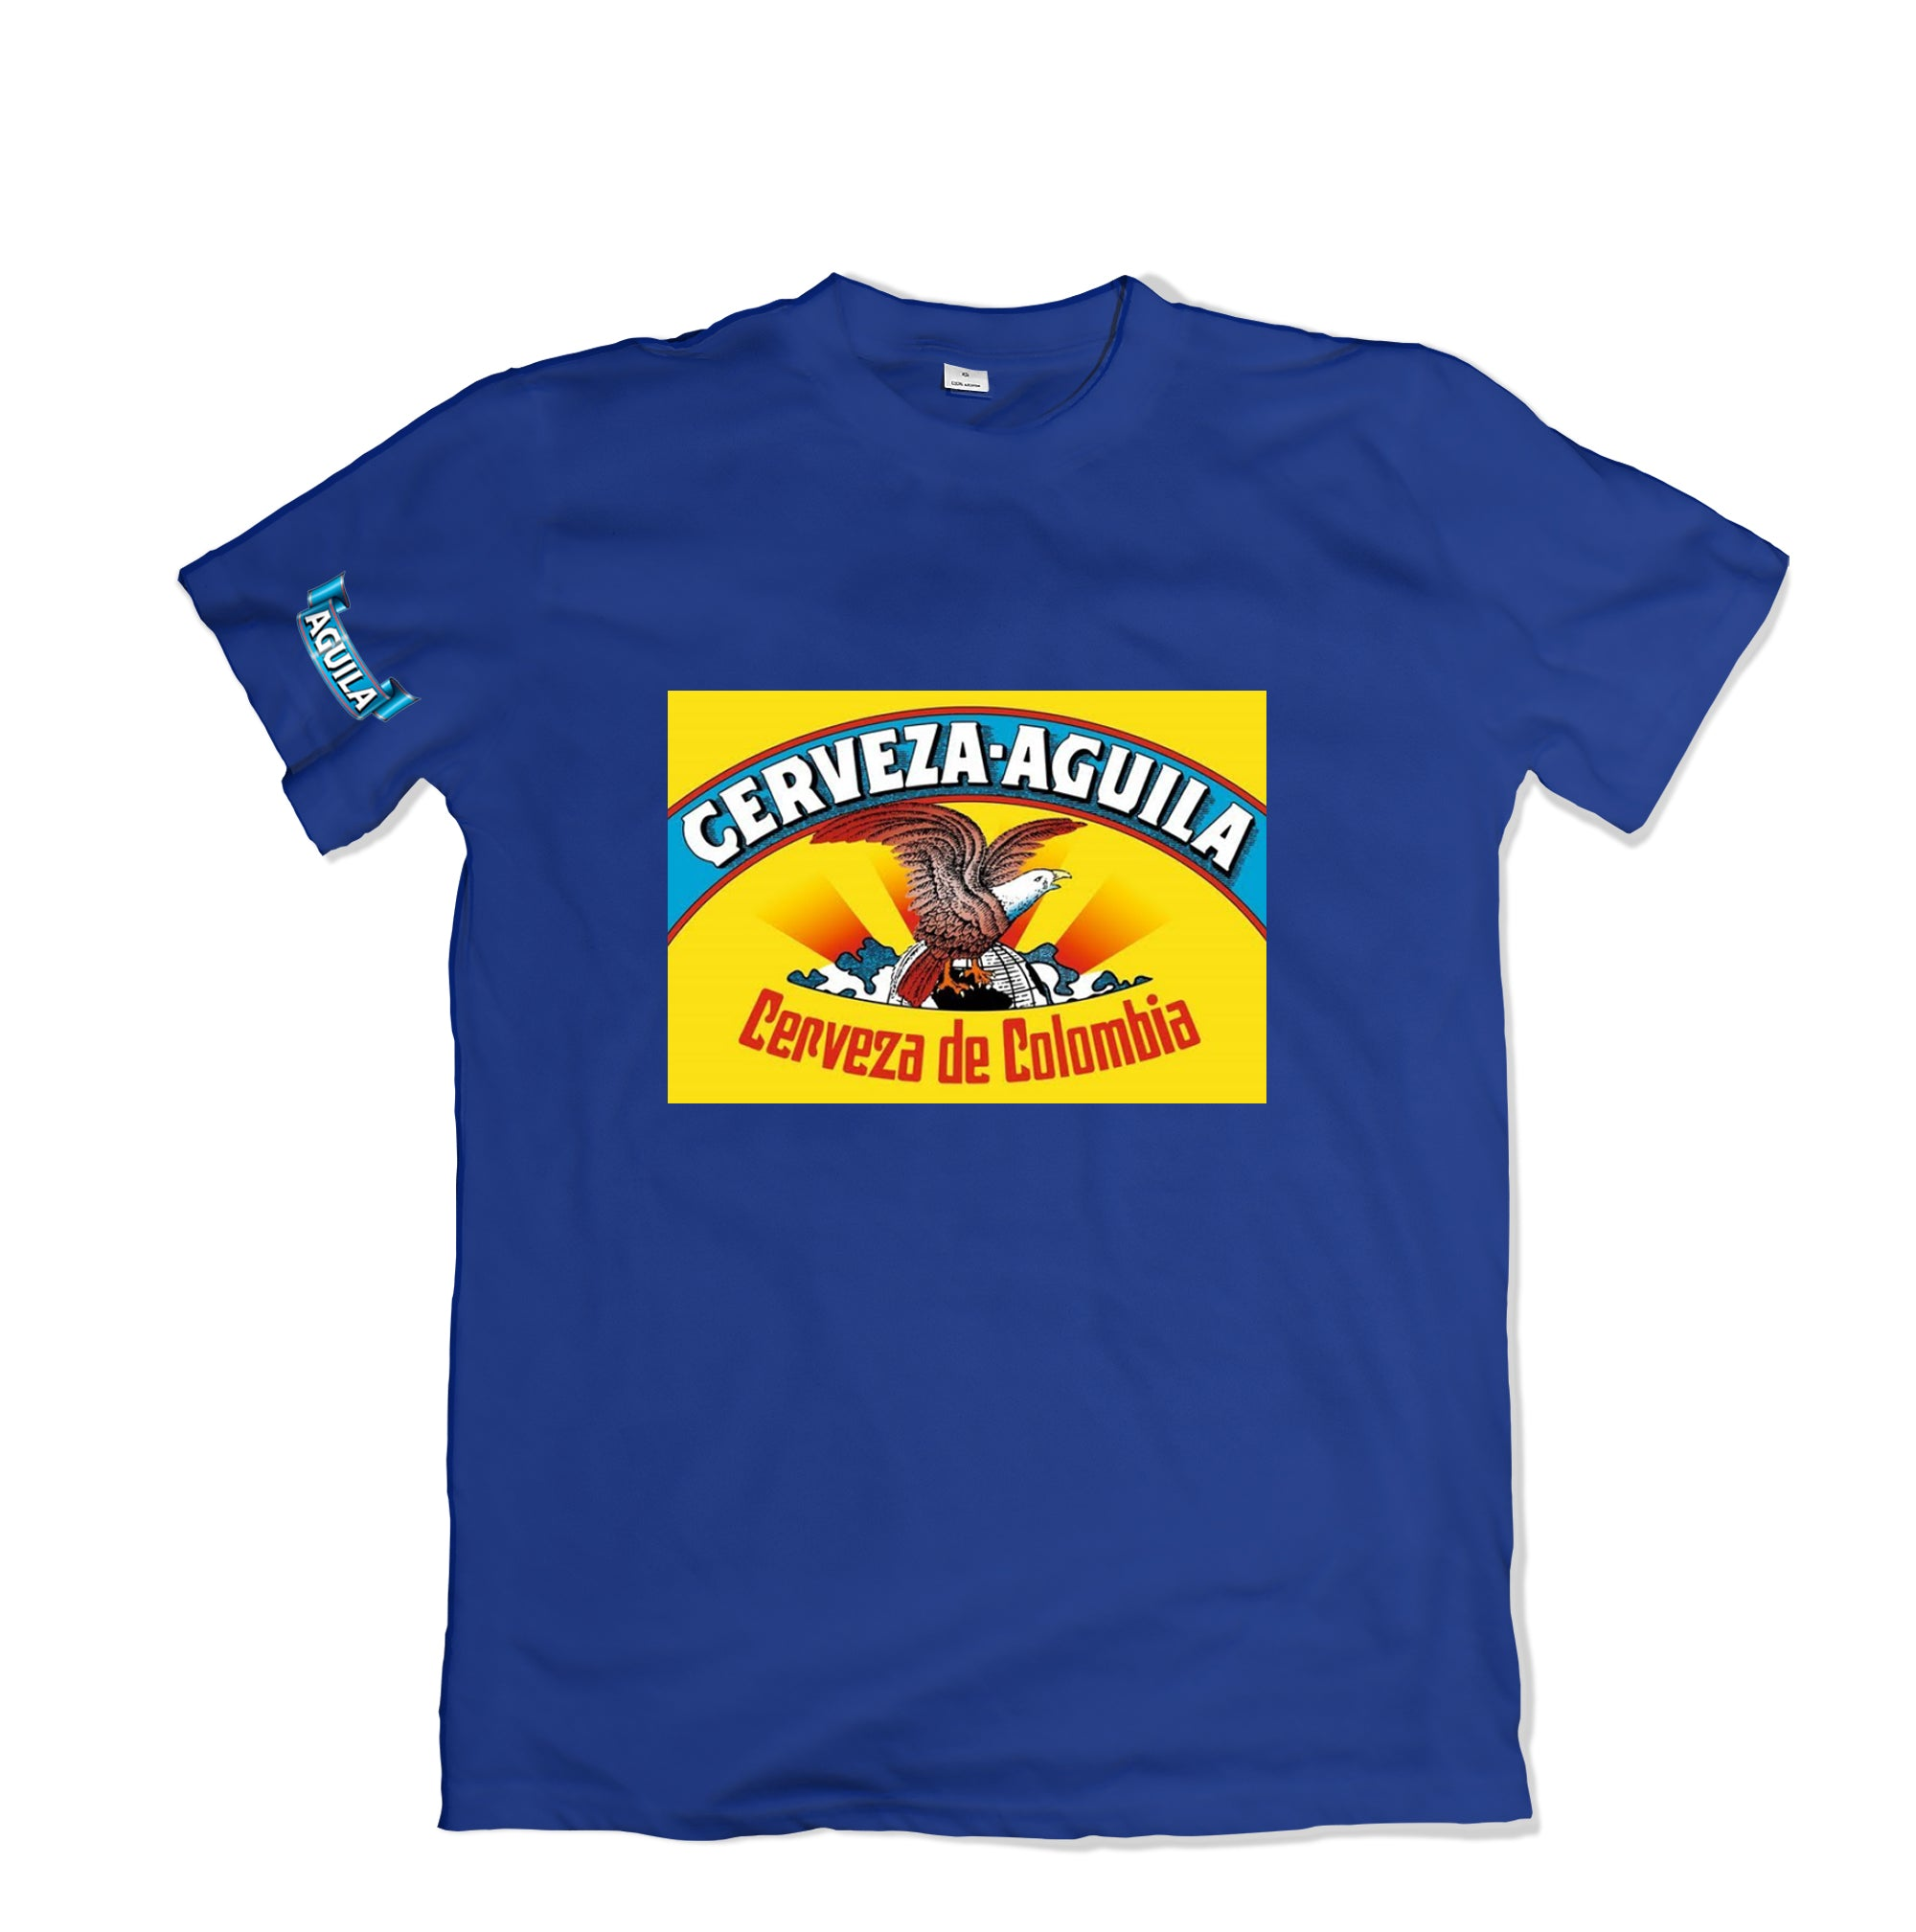 Aguila Cerveza T-SHIRT - TOPS, TSS CUSTOM GRPHX, SNEAKER STUDIO, GOLDEN GILT, DESIGN BY TSS